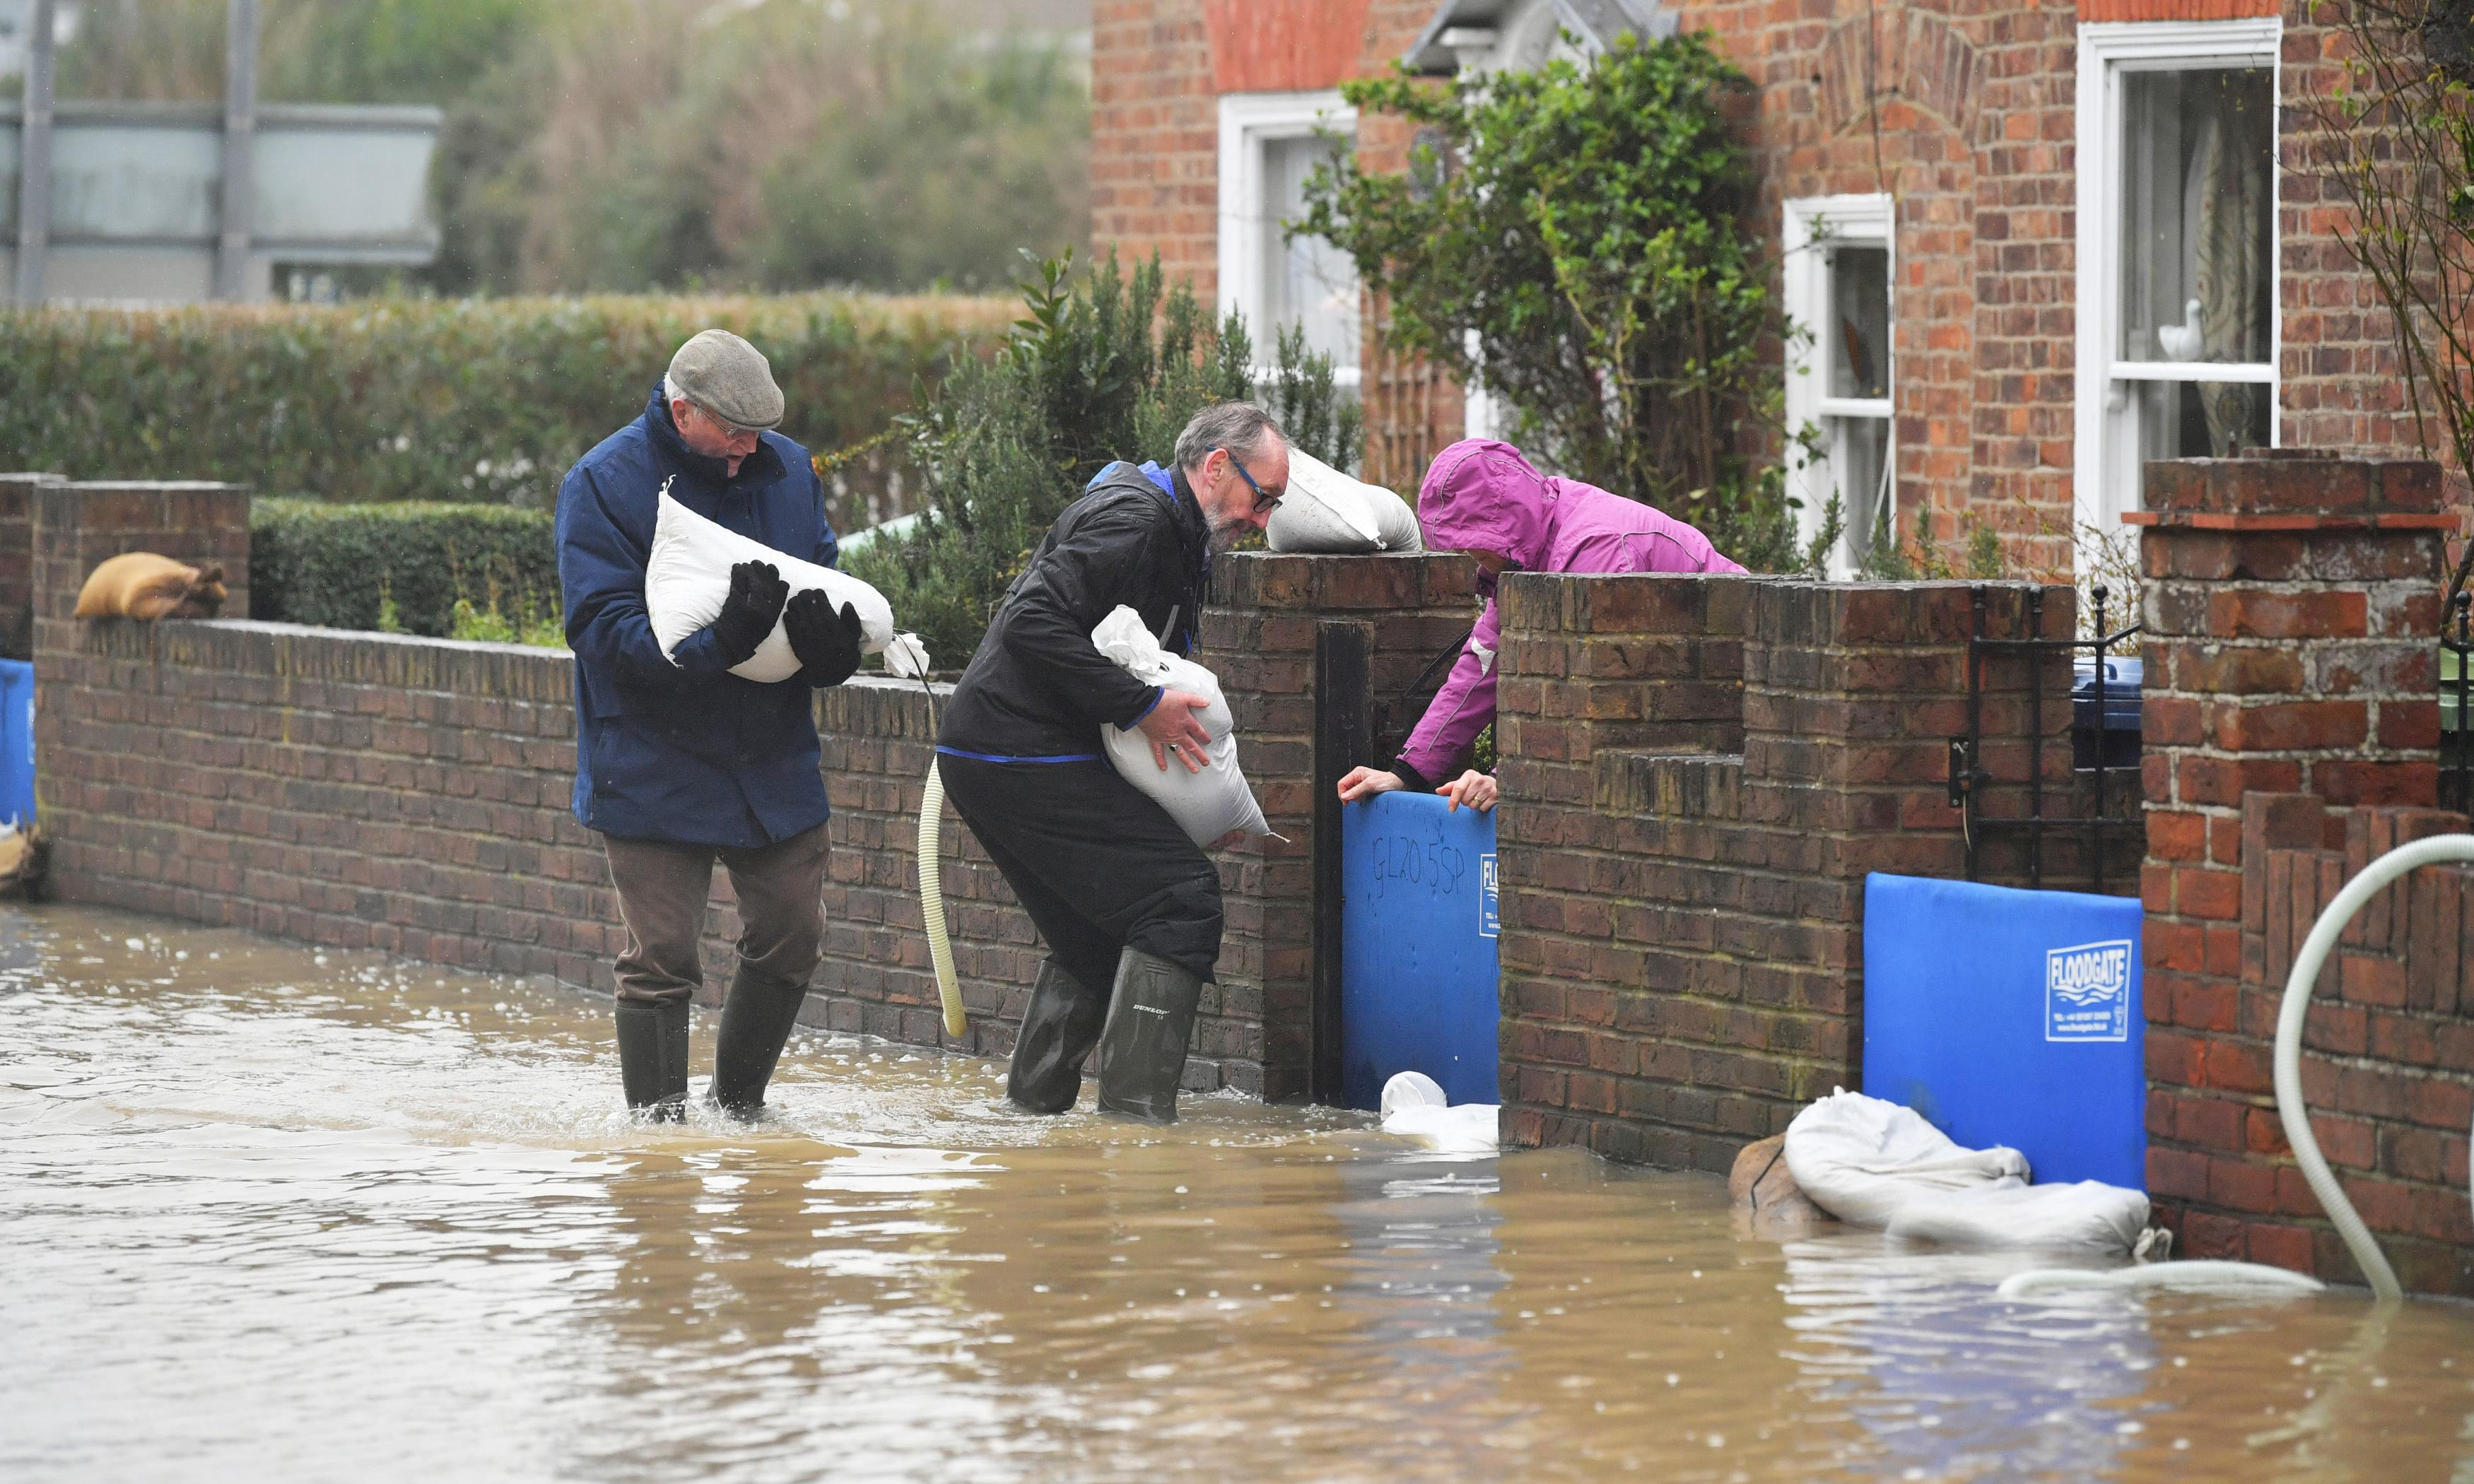 UK weather warning of further rain for areas already hit by flooding